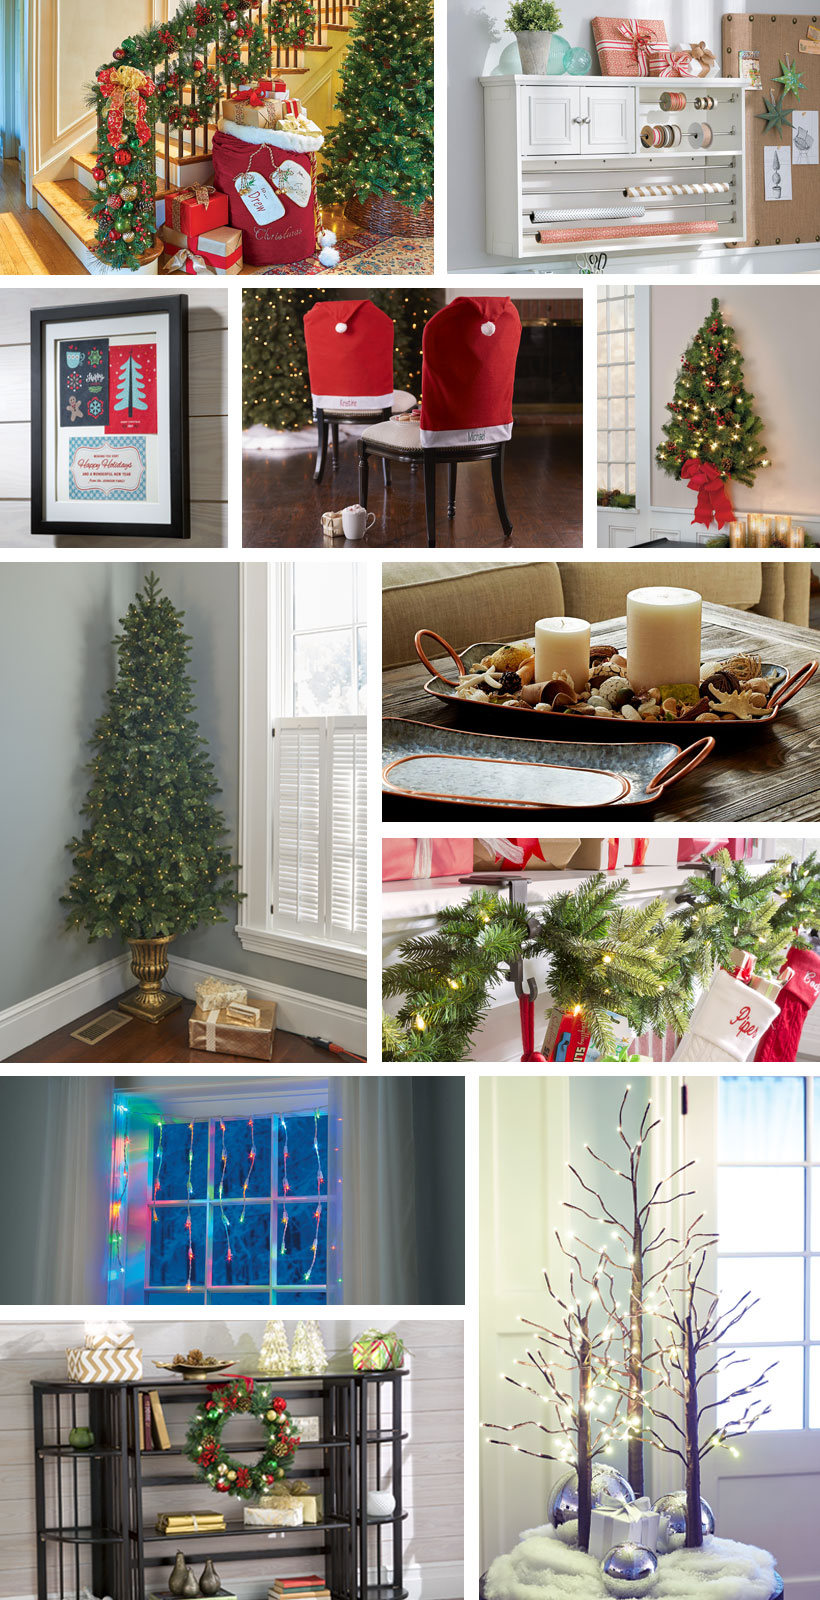 How to Decorate Small Spaces for Christmas and Make Them Cozy